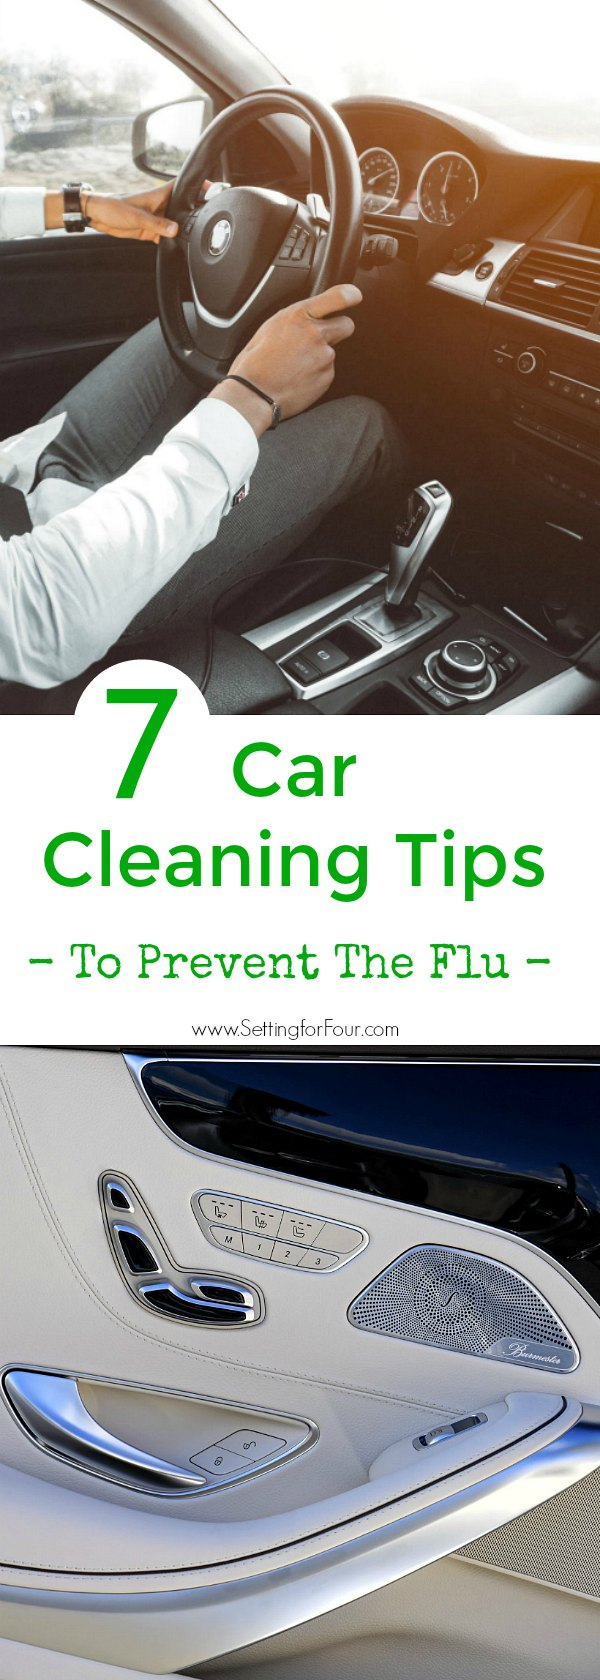 Discover 7 quick and easy car cleaning tips to prevent the flu and other illnesses! One place you may be missing to clean during flu season is your car! Your car is a germ factory - clean the places germs are hiding so you and your kids don't get sick!